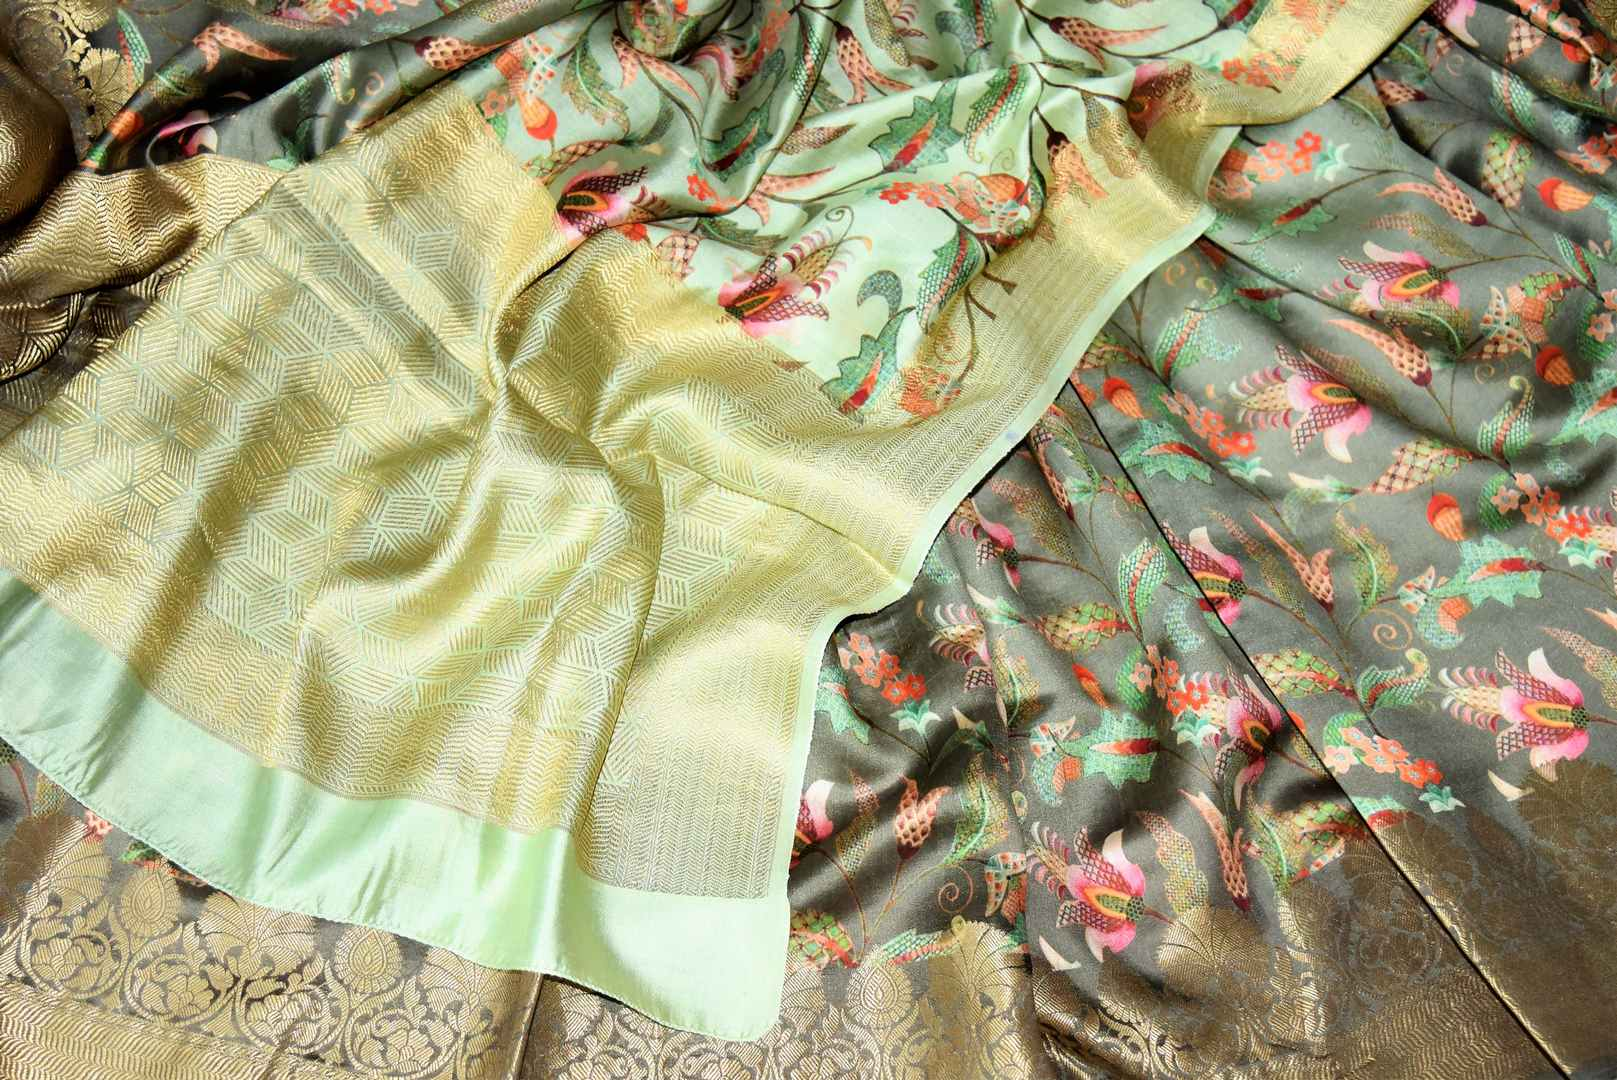 Buy ombre olive green Bangalore silk saree online in USA with golden zari border. Shop such finely handcrafted Indian sarees from Pure Elegance Indian fashion store in USA for weddings and special occasions.-details